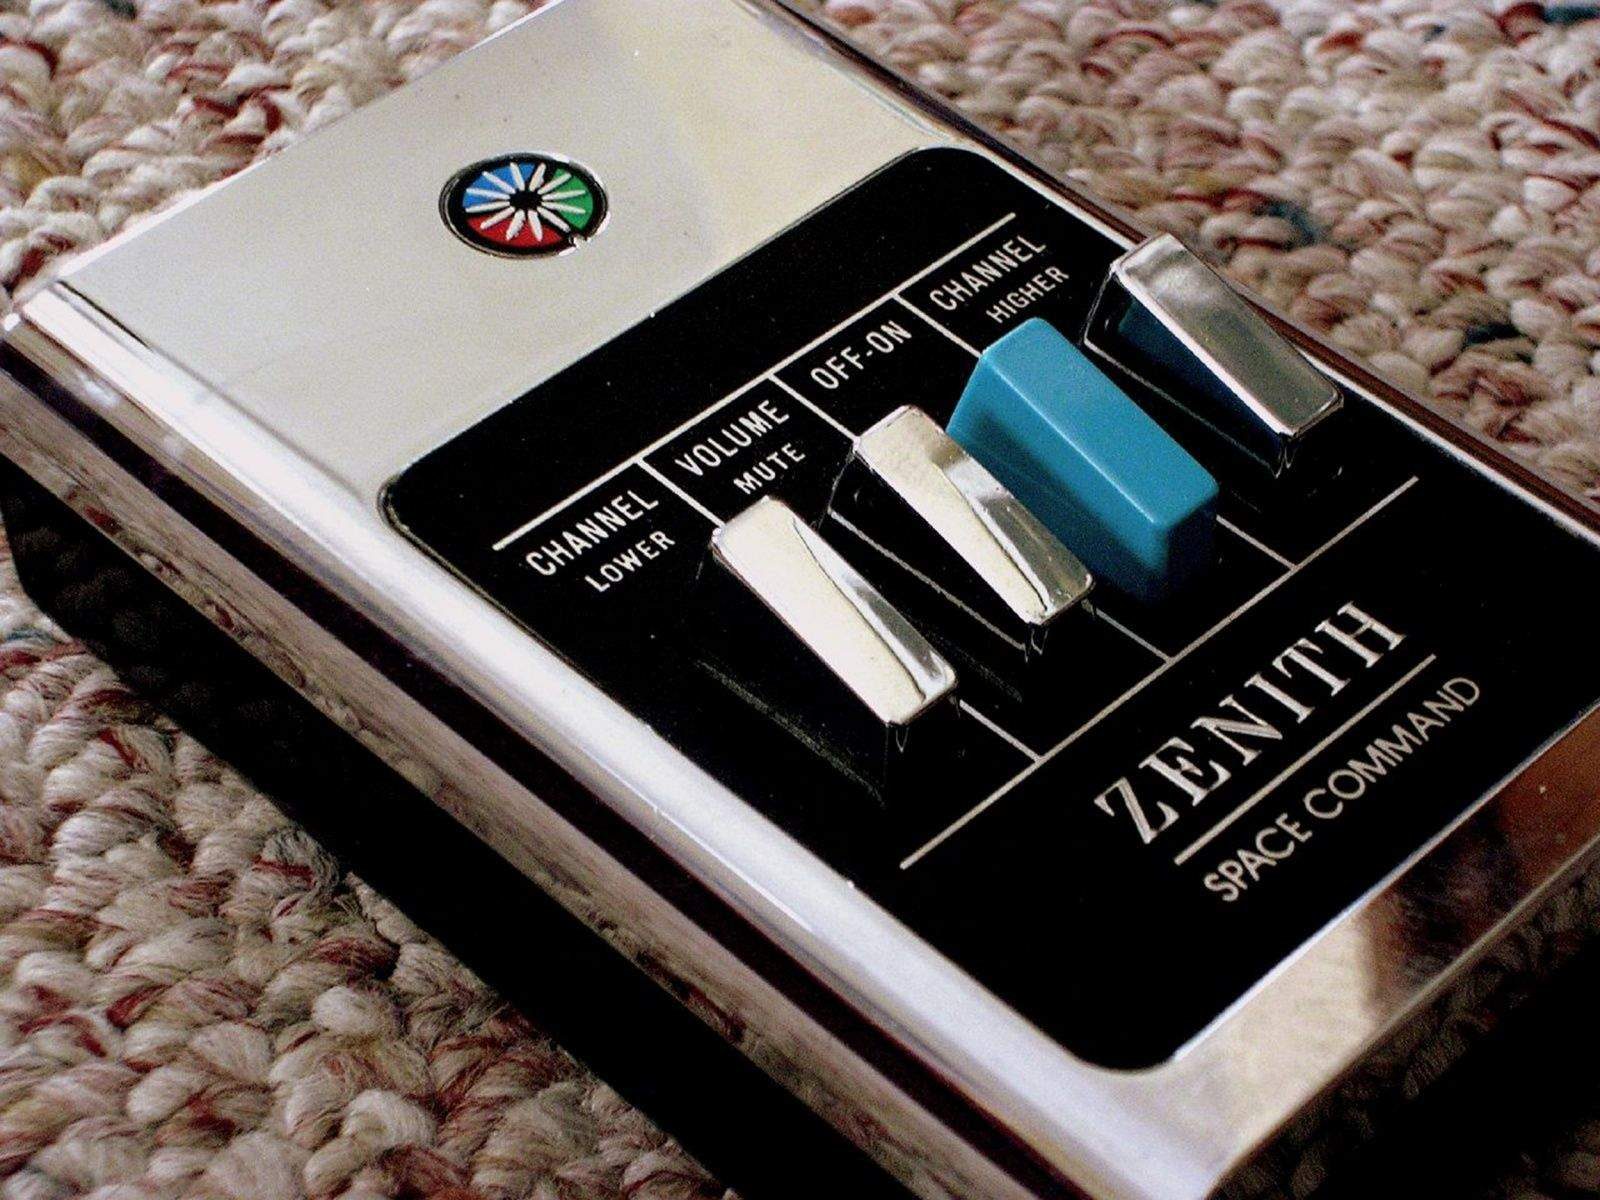 The remote control for the Zenith Space Command TV. Photo: Todd Ehlers/Flickr CC